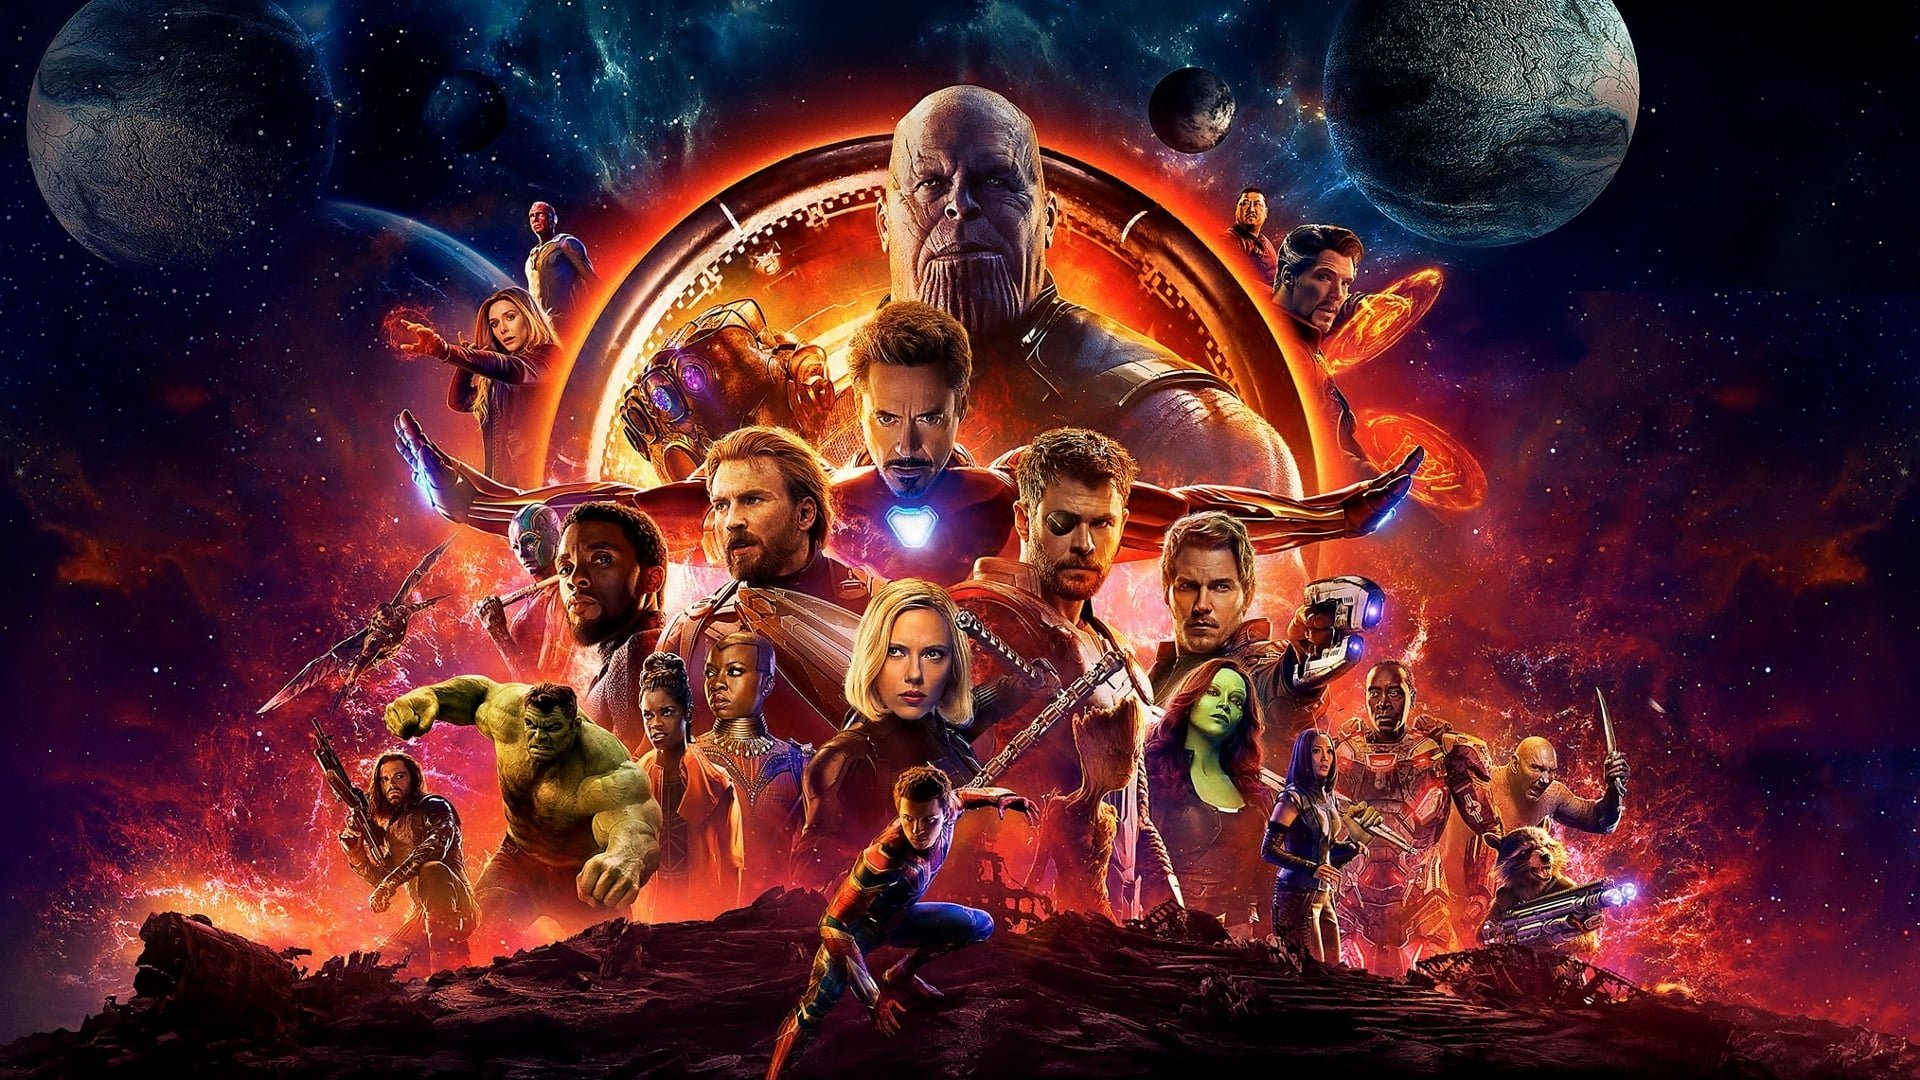 Wallpaper Avenger Infinity War Android